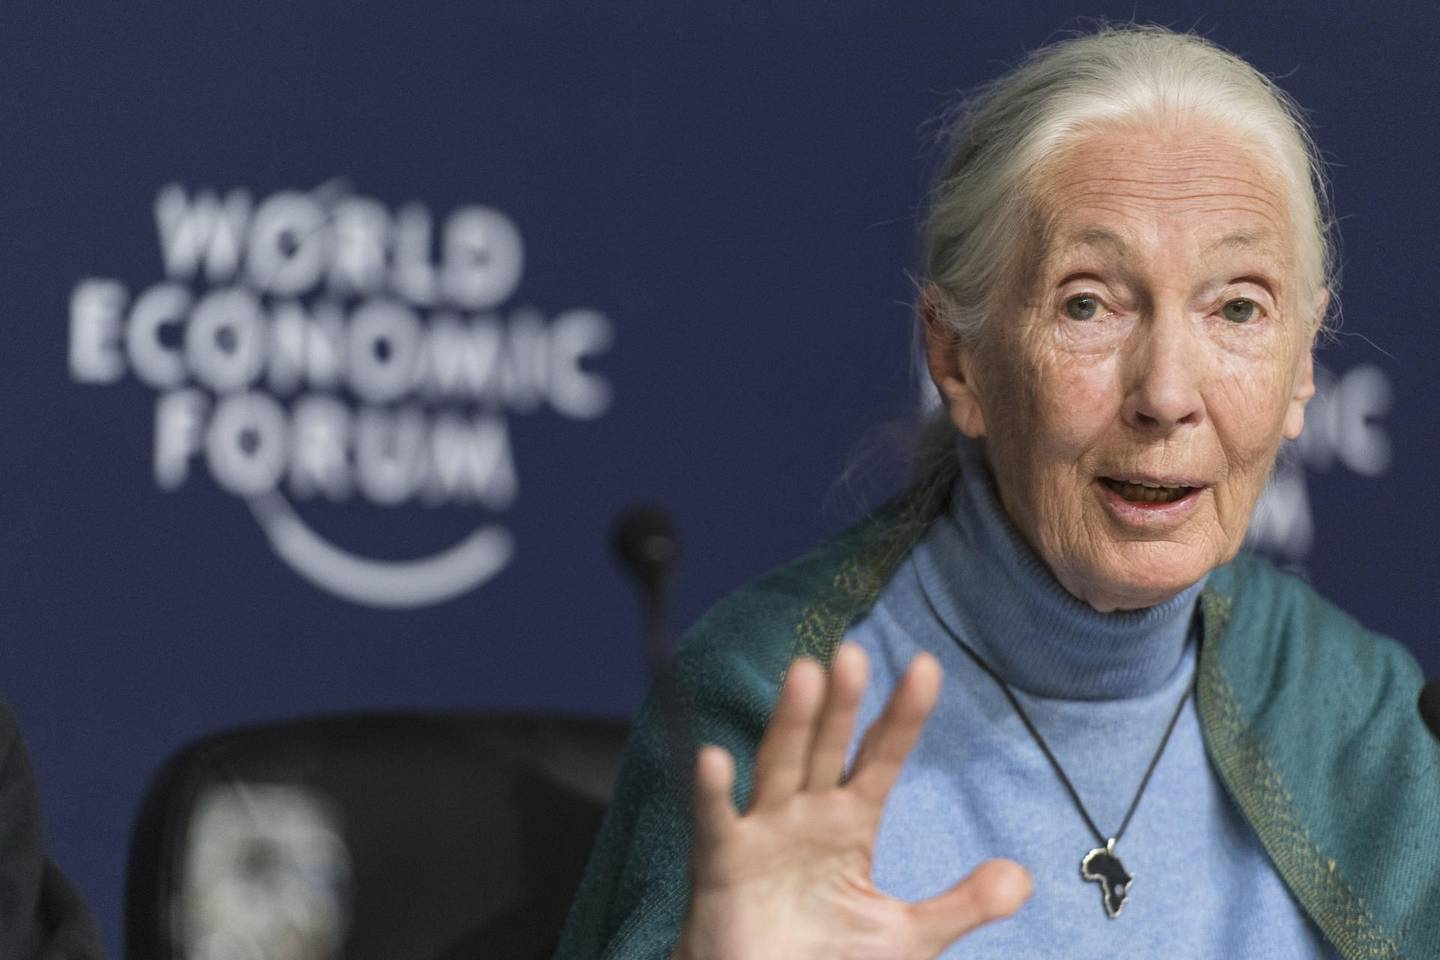 epa08150873 Jane Goodall, English primatologist and anthropologist, addresses a press conference during the 50th annual meeting of the World Economic Forum, WEF, in Davos, Switzerland, 22 January 2020. The meeting brings together entrepreneurs, scientists, corporate and political leaders in Davos from January 21 to 24.  EPA/ALESSANDRO DELLA VALLE